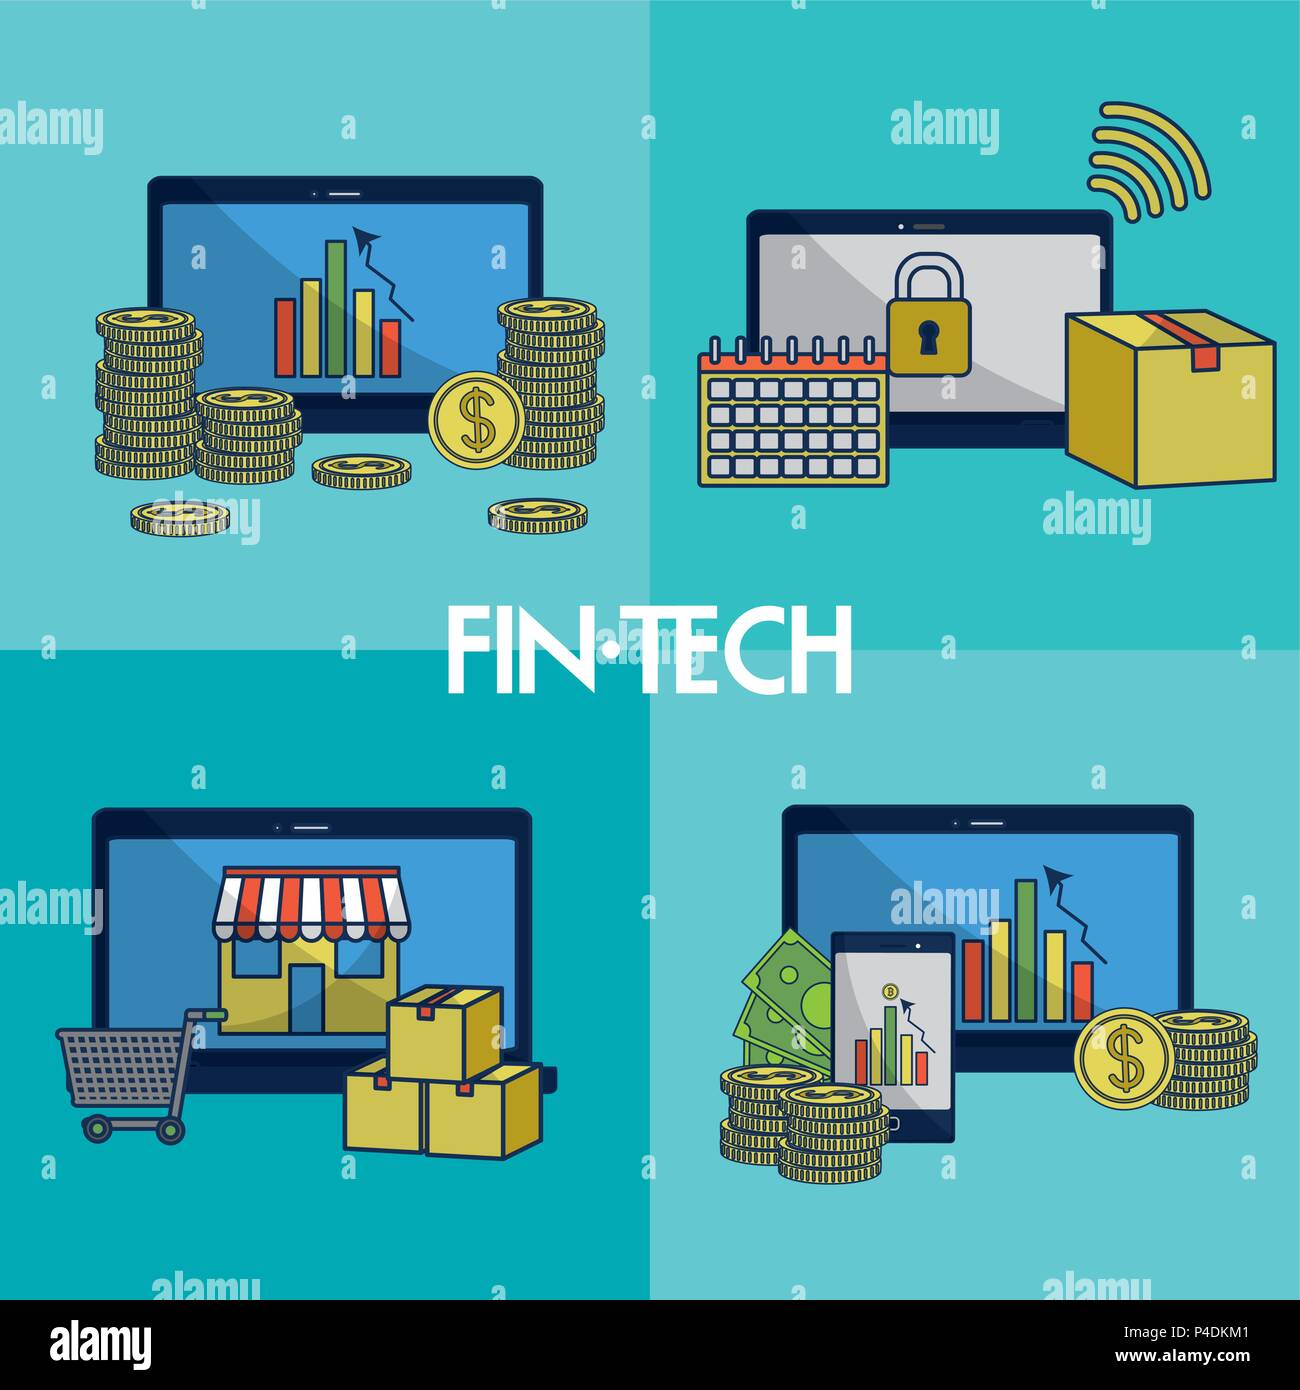 Financial technology square frames - Stock Image